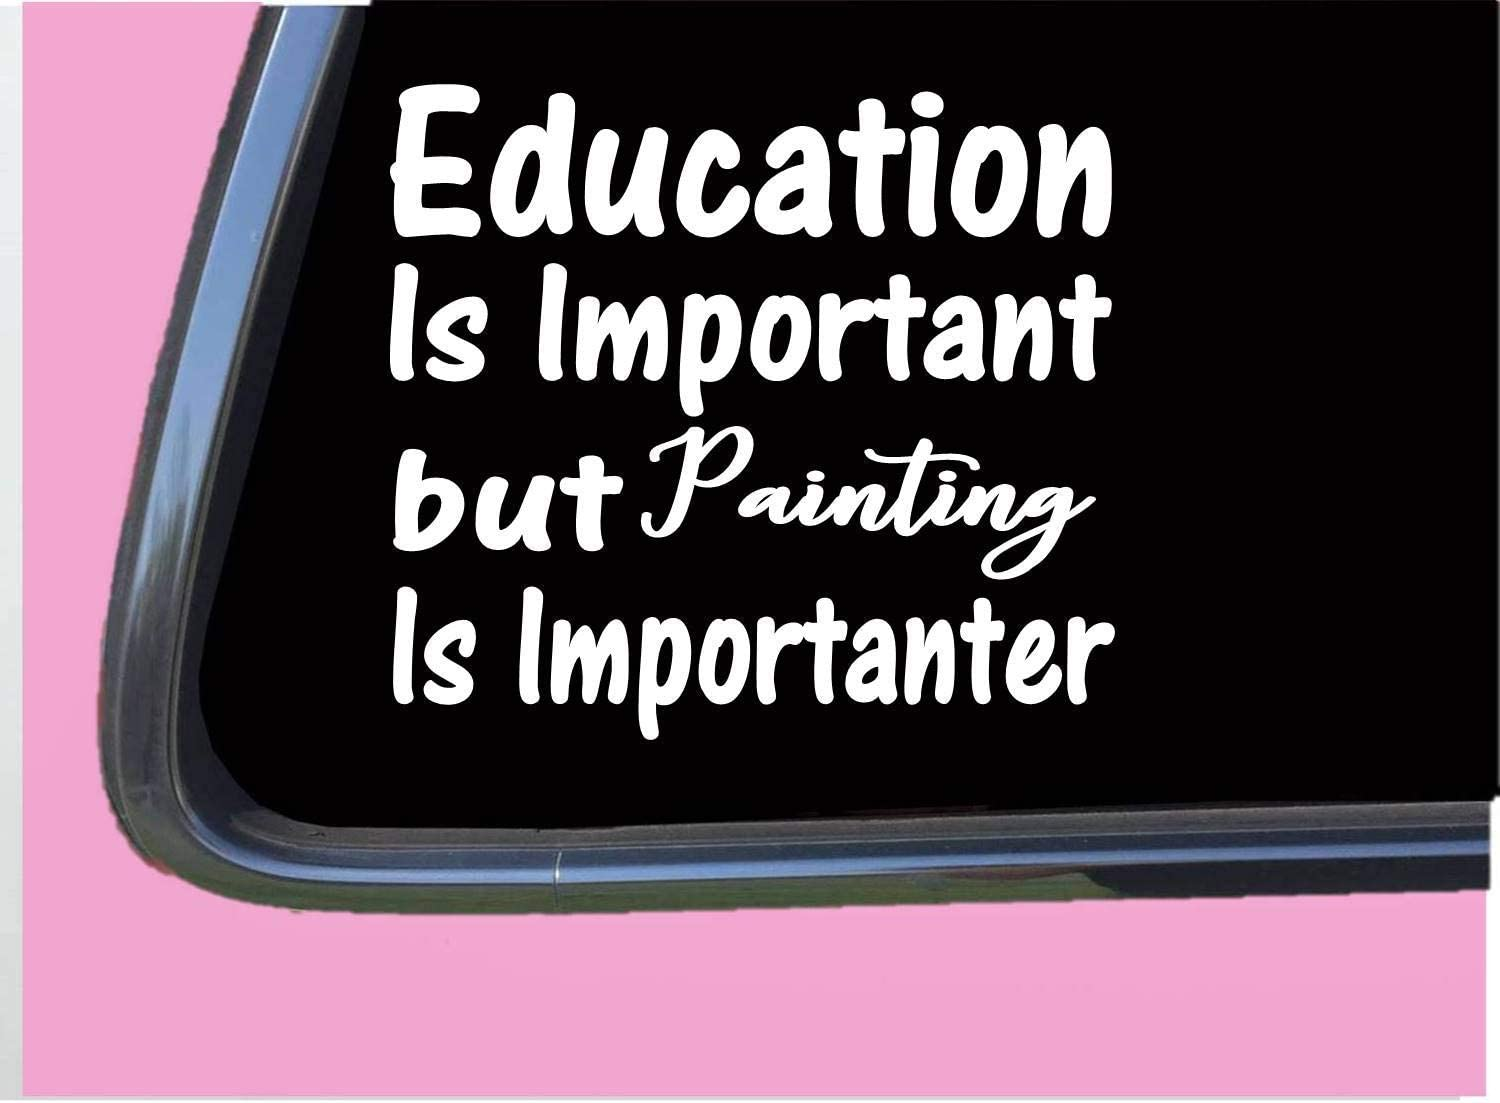 "Painting Important TP074 Vinyl 6"" Decal Sticker Painter Brush Paint Vinyl Decal for Cars, Trucks, Laptops"